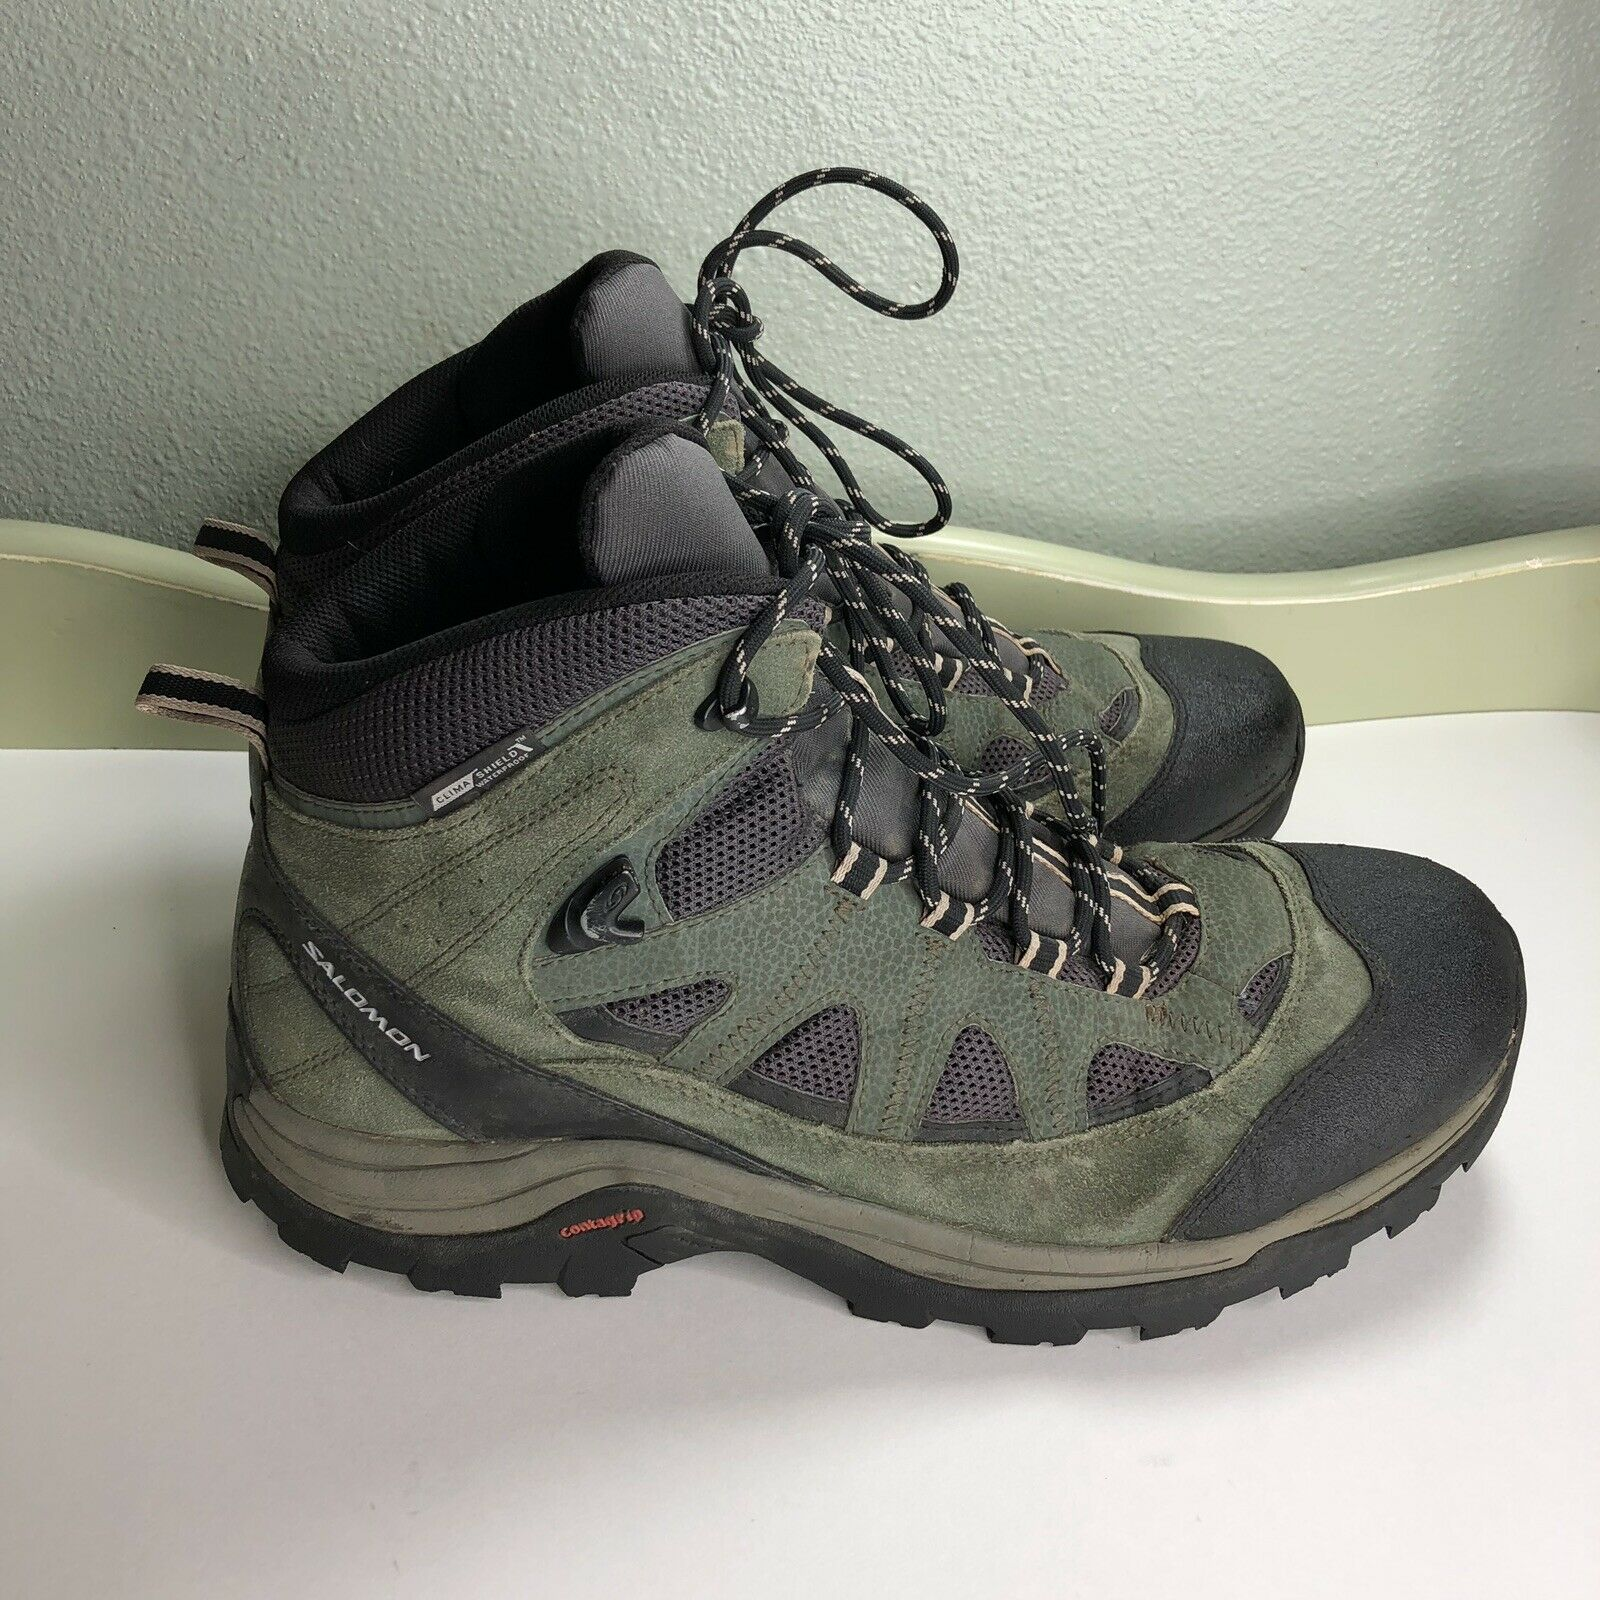 Salomon Hiking Boots Men Size  13.5 Great Condition  here has the latest